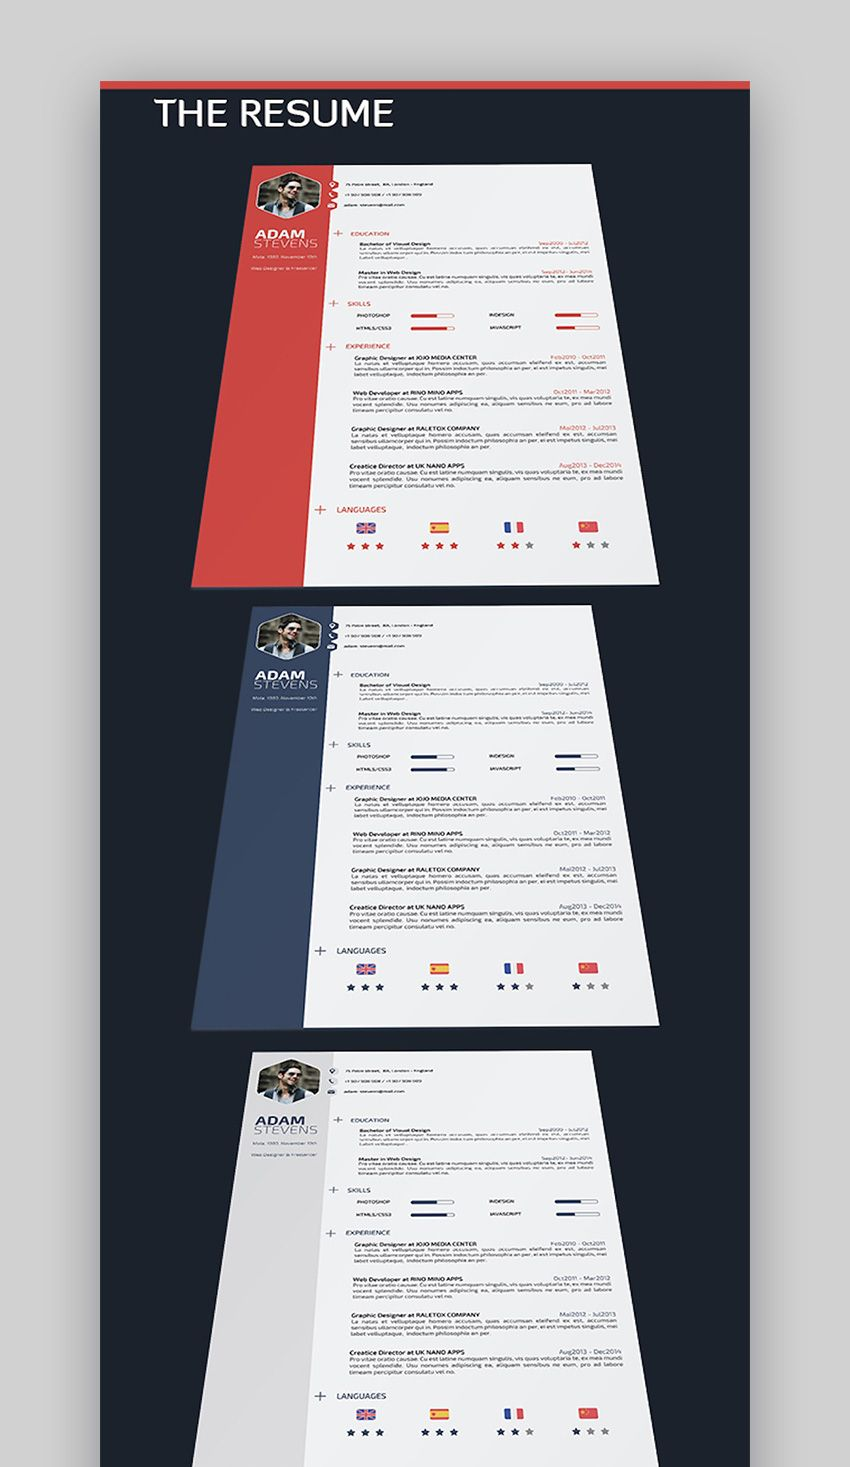 20 free creative resume templates word psd downloads resume 20 free creative resume templates word psd downloads maxwellsz